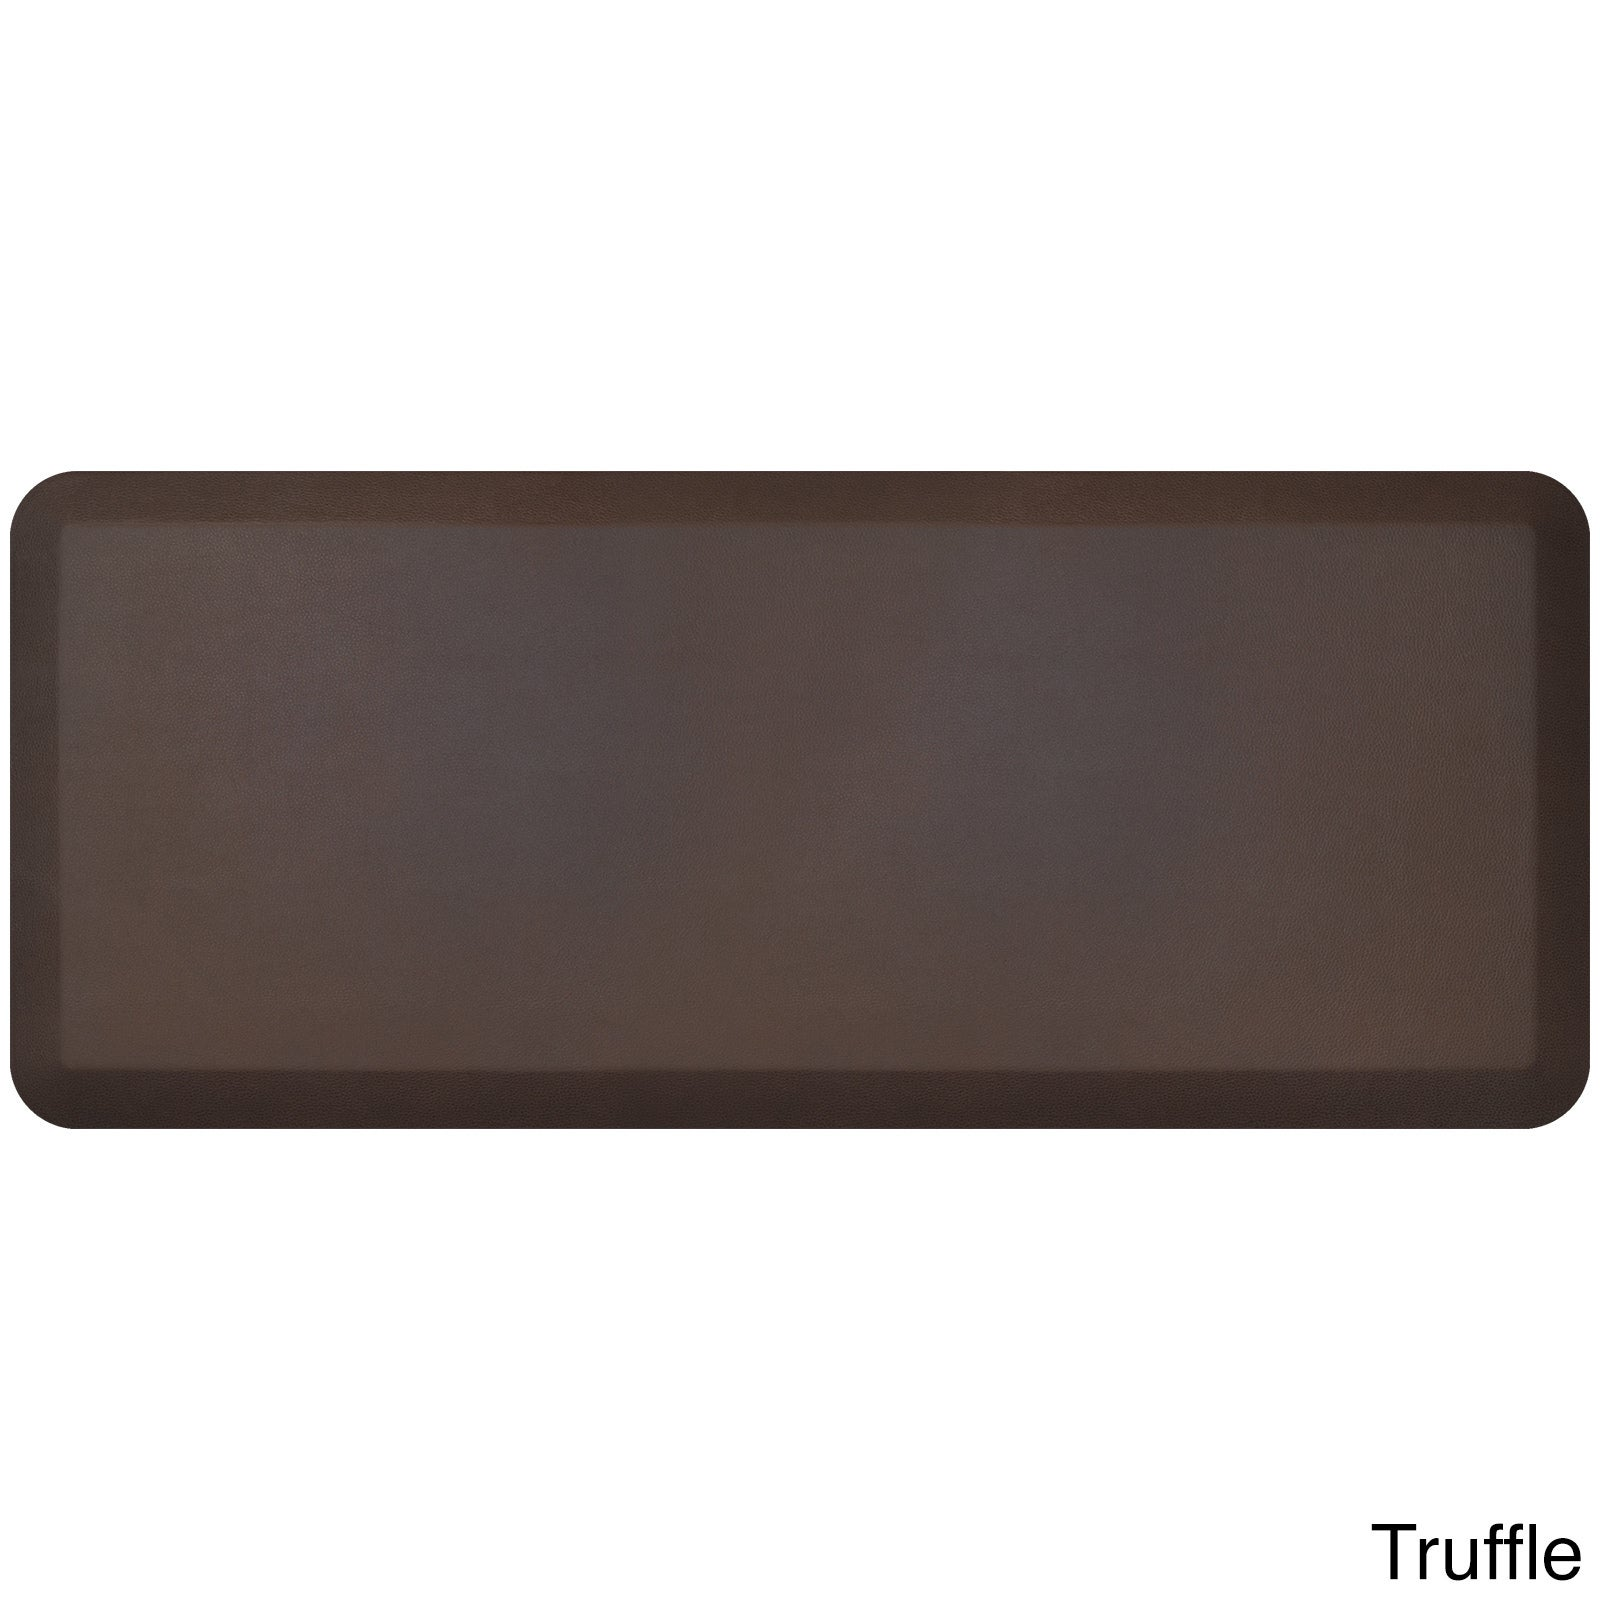 decorative size the kitchen costco best mat gel therapeutic fatigue comfort anti luxe chef pro floor startling gelpro resilience target of walmart reviews full for cushion elite mats